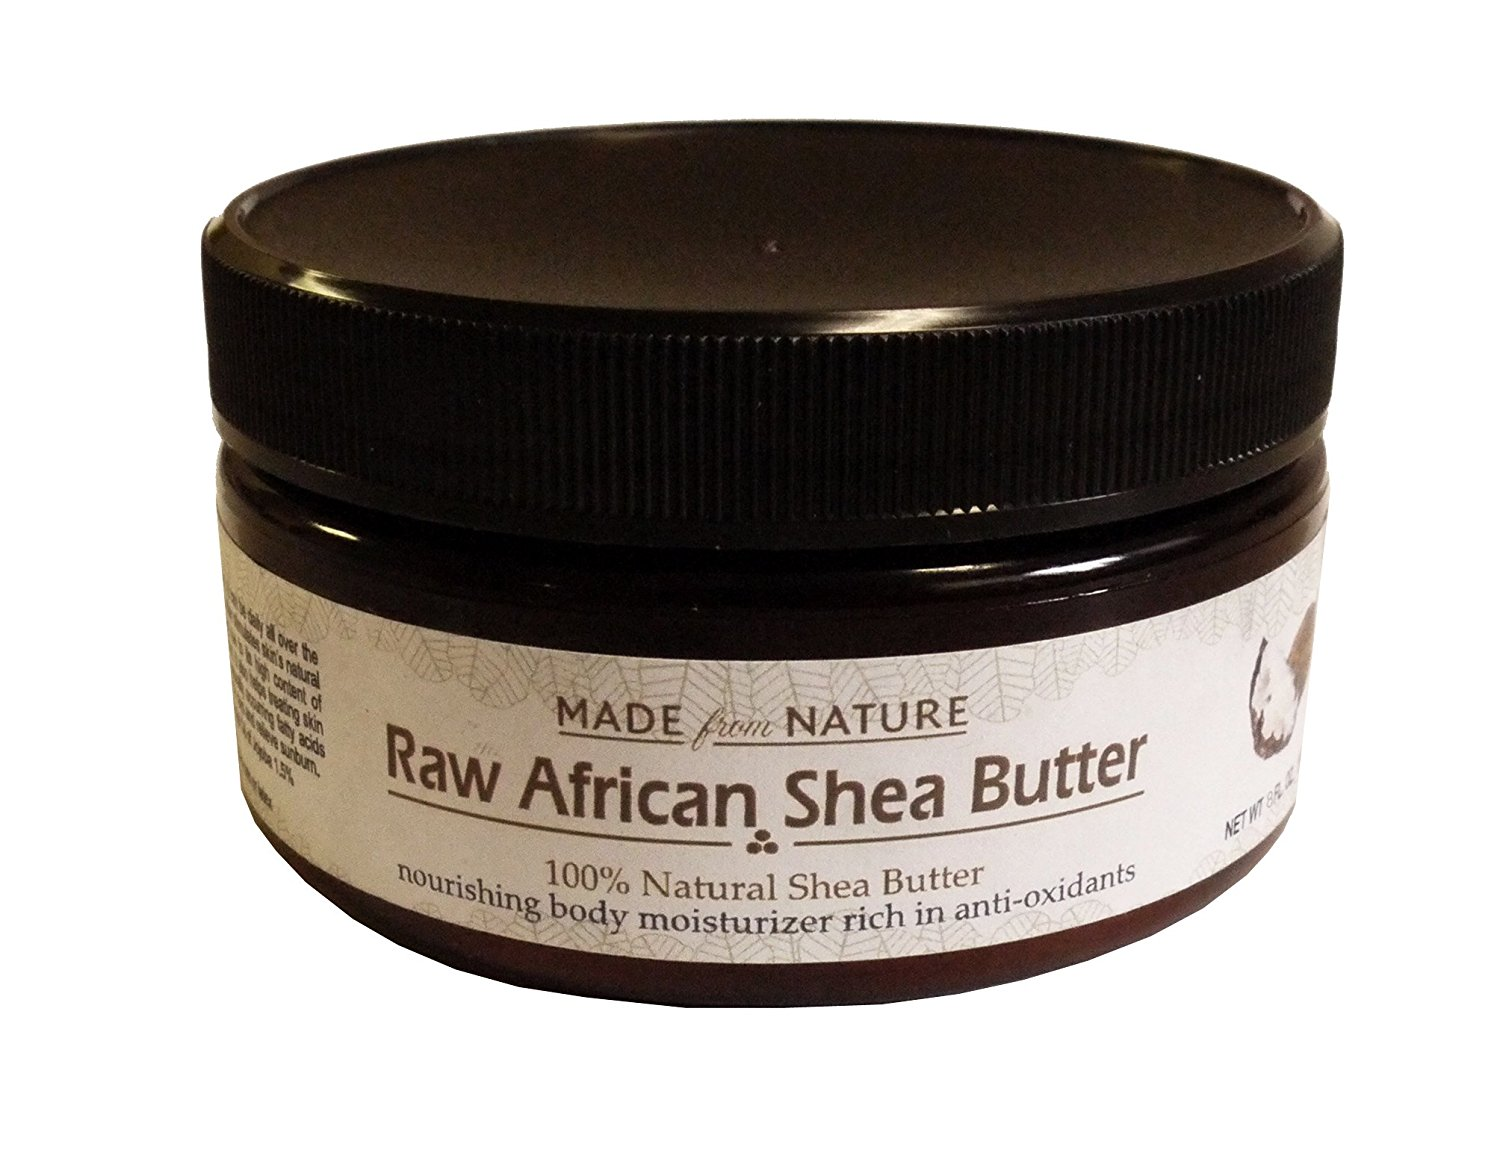 Made From Nature Raw African Shea Butter 98% Natural Shea Butter 1.5% Jojoba Oil 0.5% Fresh Flower Flavor -Nourishing Body Moisturizer Rich in Anti-oxidants. Premium Raw Unrefined African Organic Grade a Ivory Shea Butter for Natural Skin Care, Hair Care and Body Butters. - 100% Pure and Double